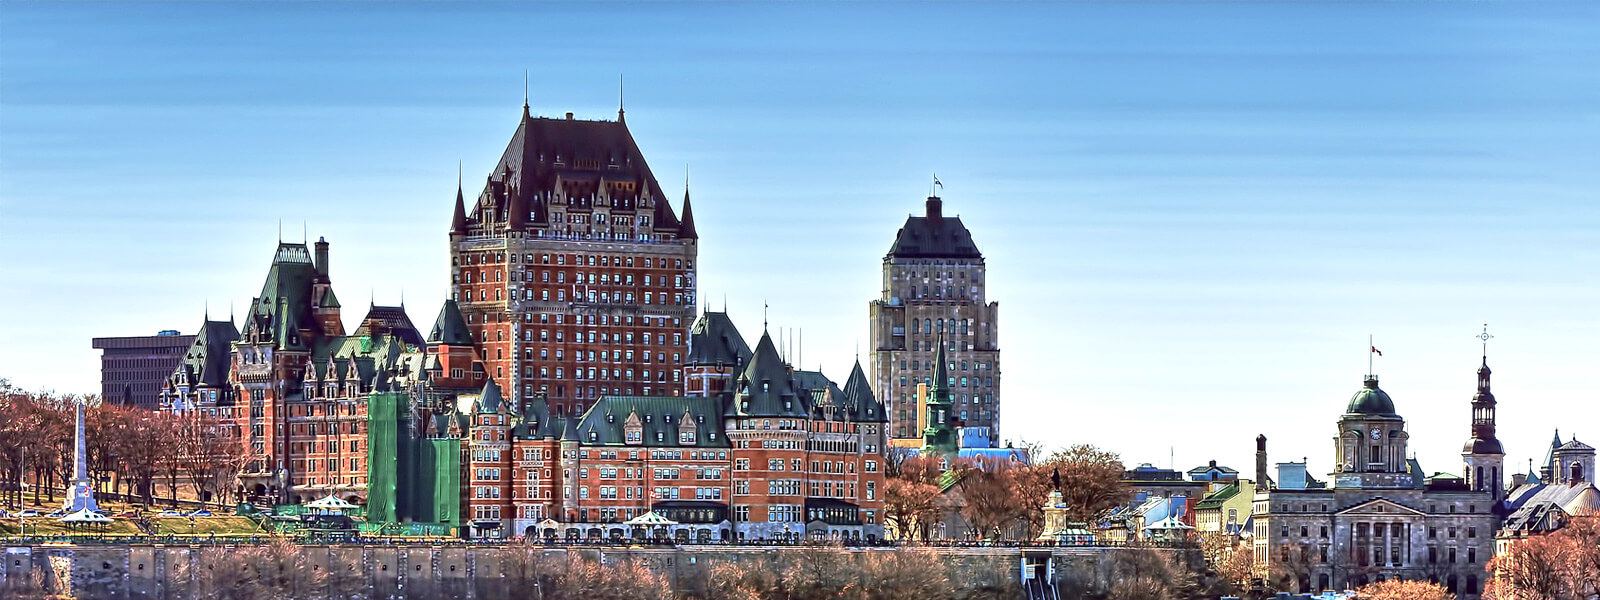 View of Old Quebec City in Eastern Canada